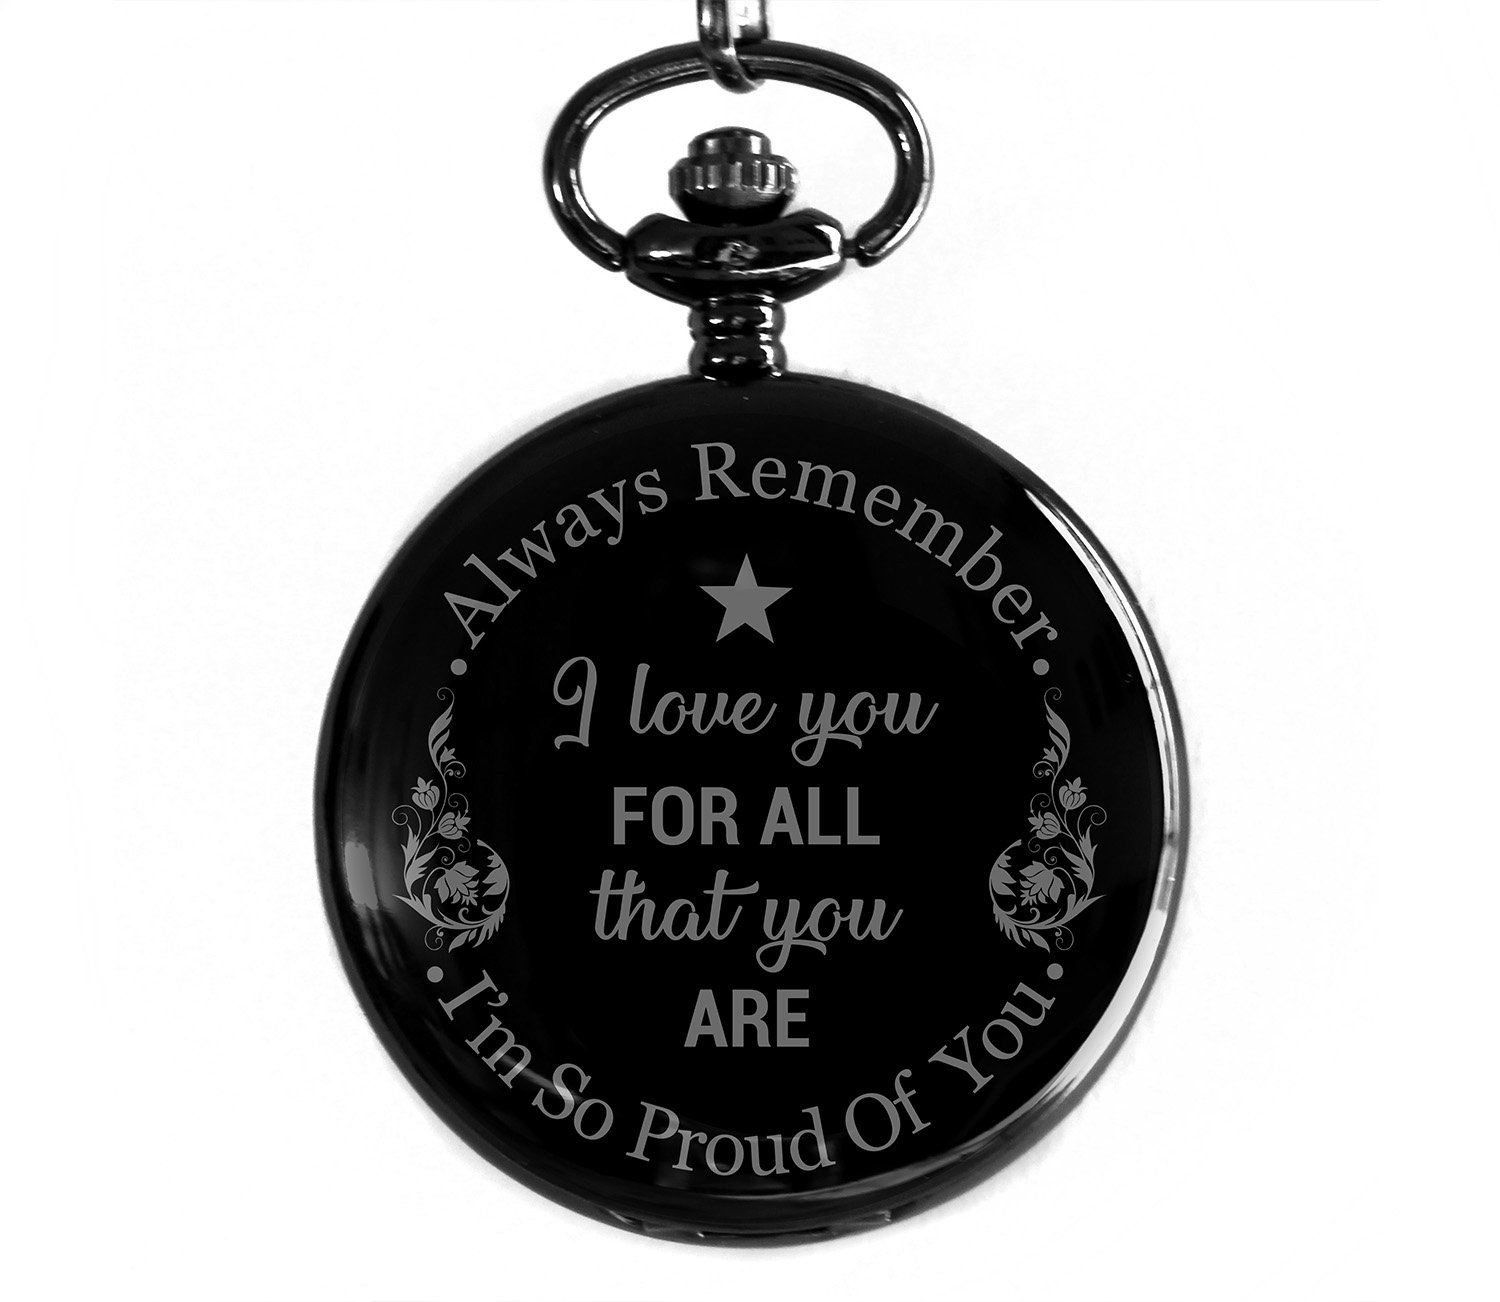 Cronos - I Love You For All That You Are - Laser Engraved Metallic Pocket Watch - Gift for Son, Father, Husband, Boyfriend, Bestfriend and Men of All Ages